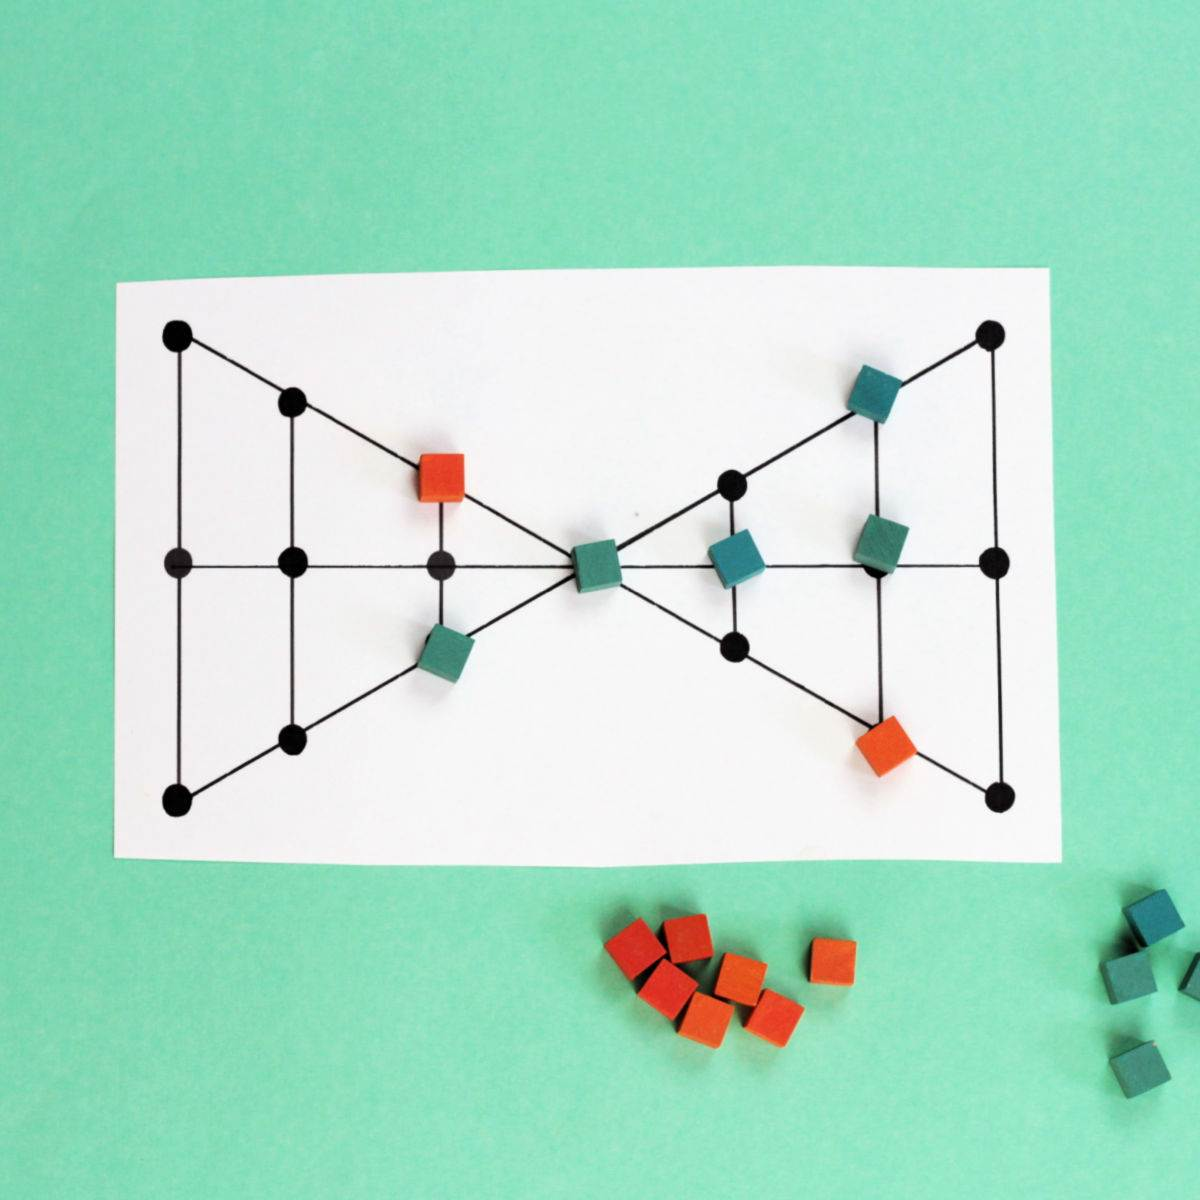 lau kata kati game board in shape of two triangles connected at a single vertex with green and orange square tokens